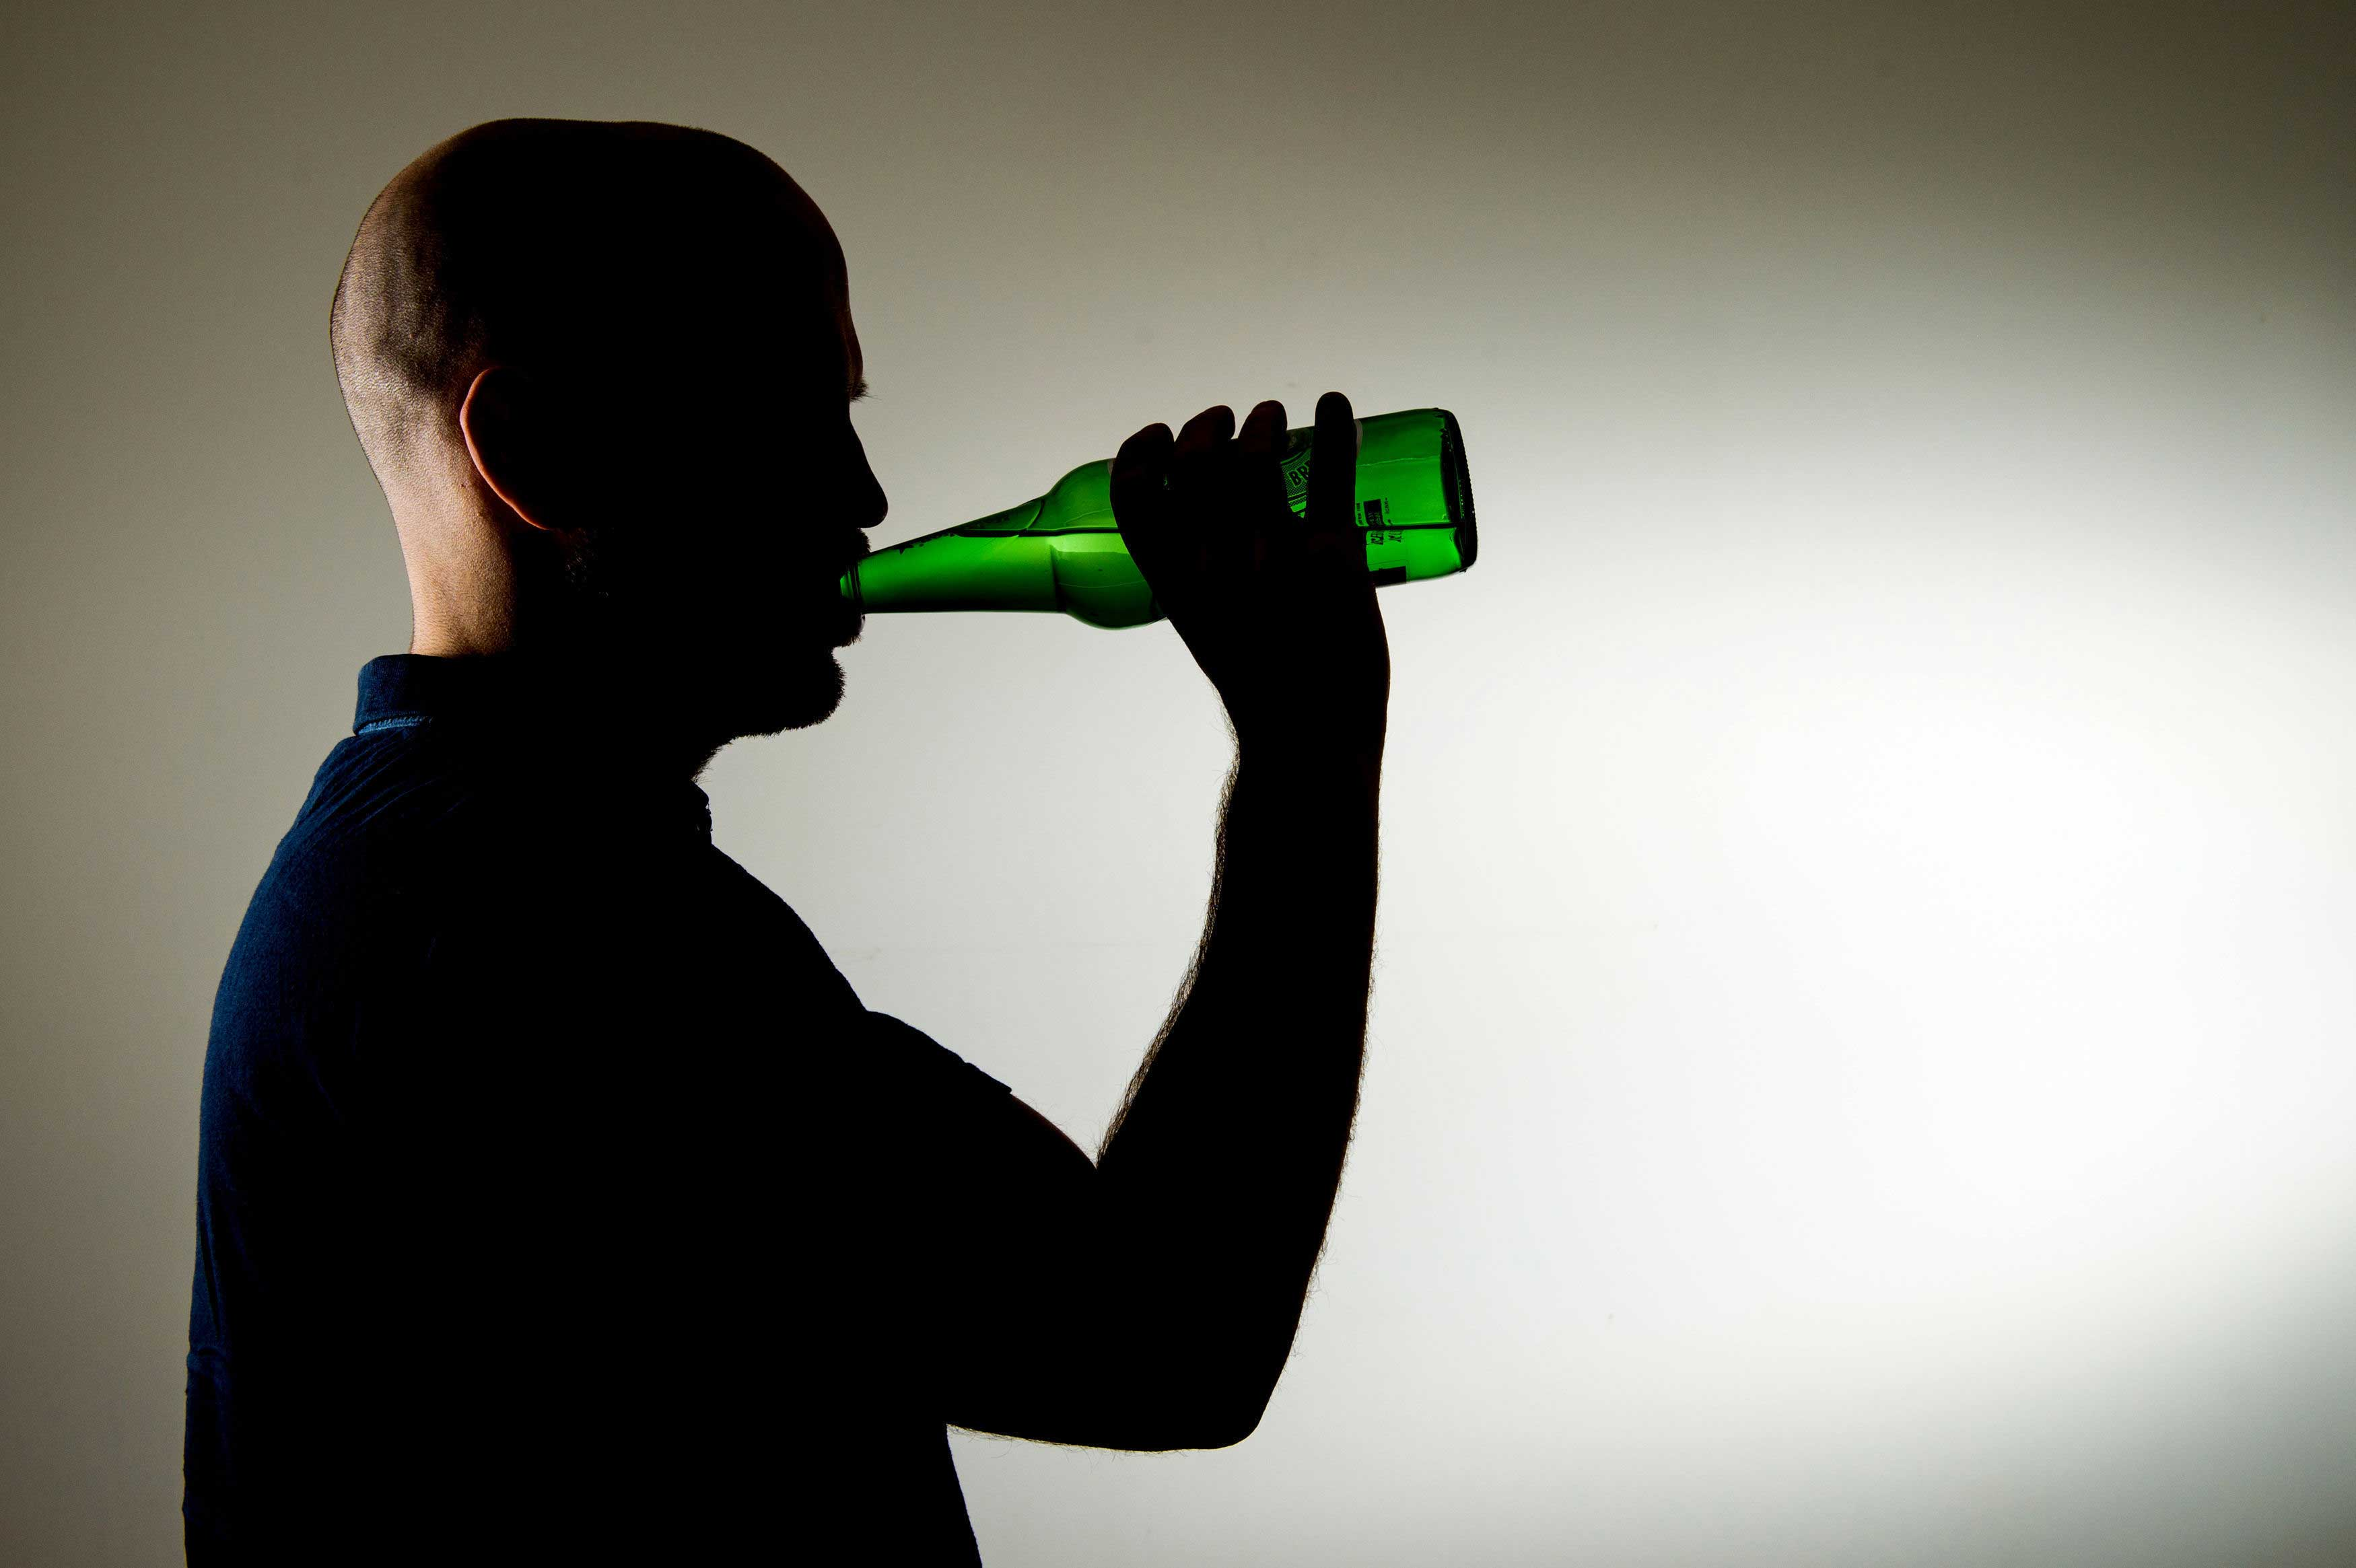 Over-drinking could take five years off your life, says study